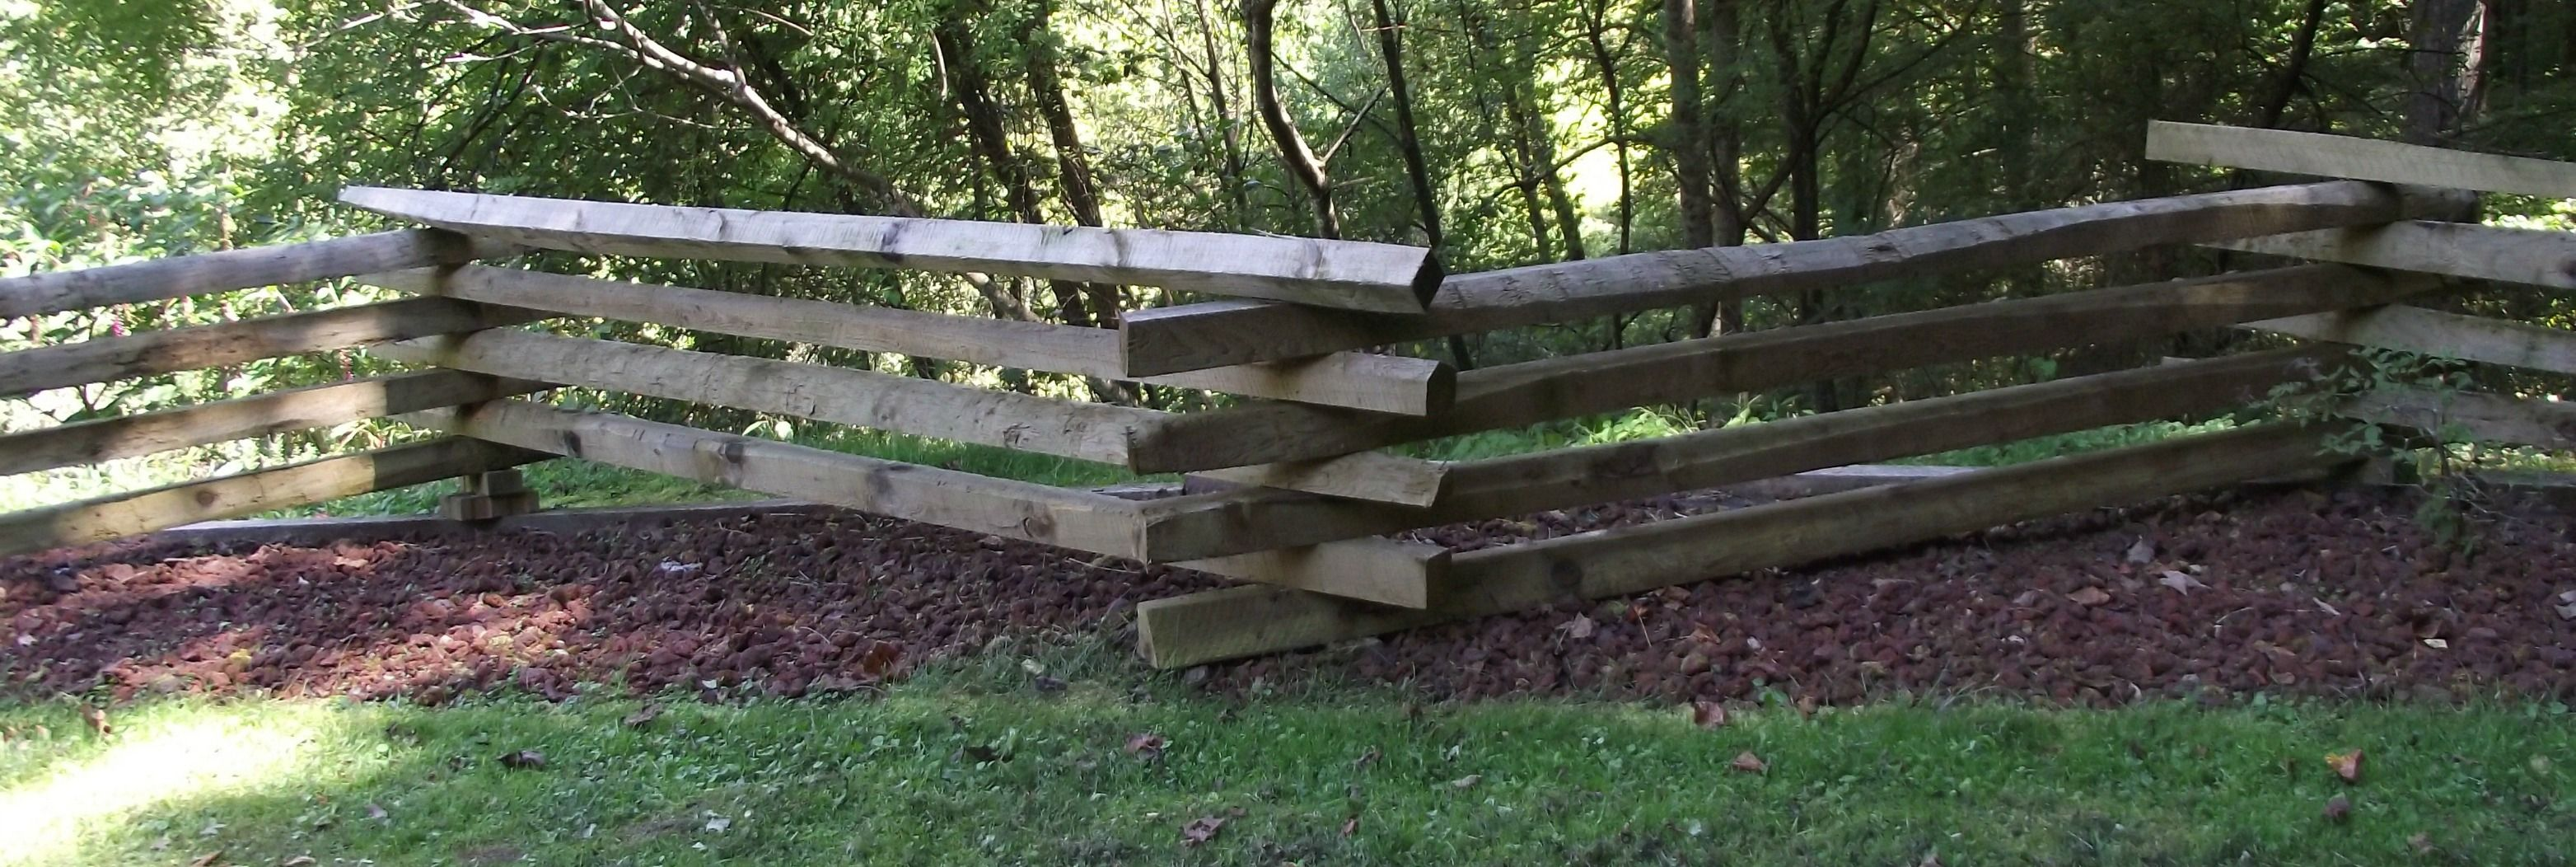 A split-rail fence or log fence, also known as a zigzag fence, worm ...